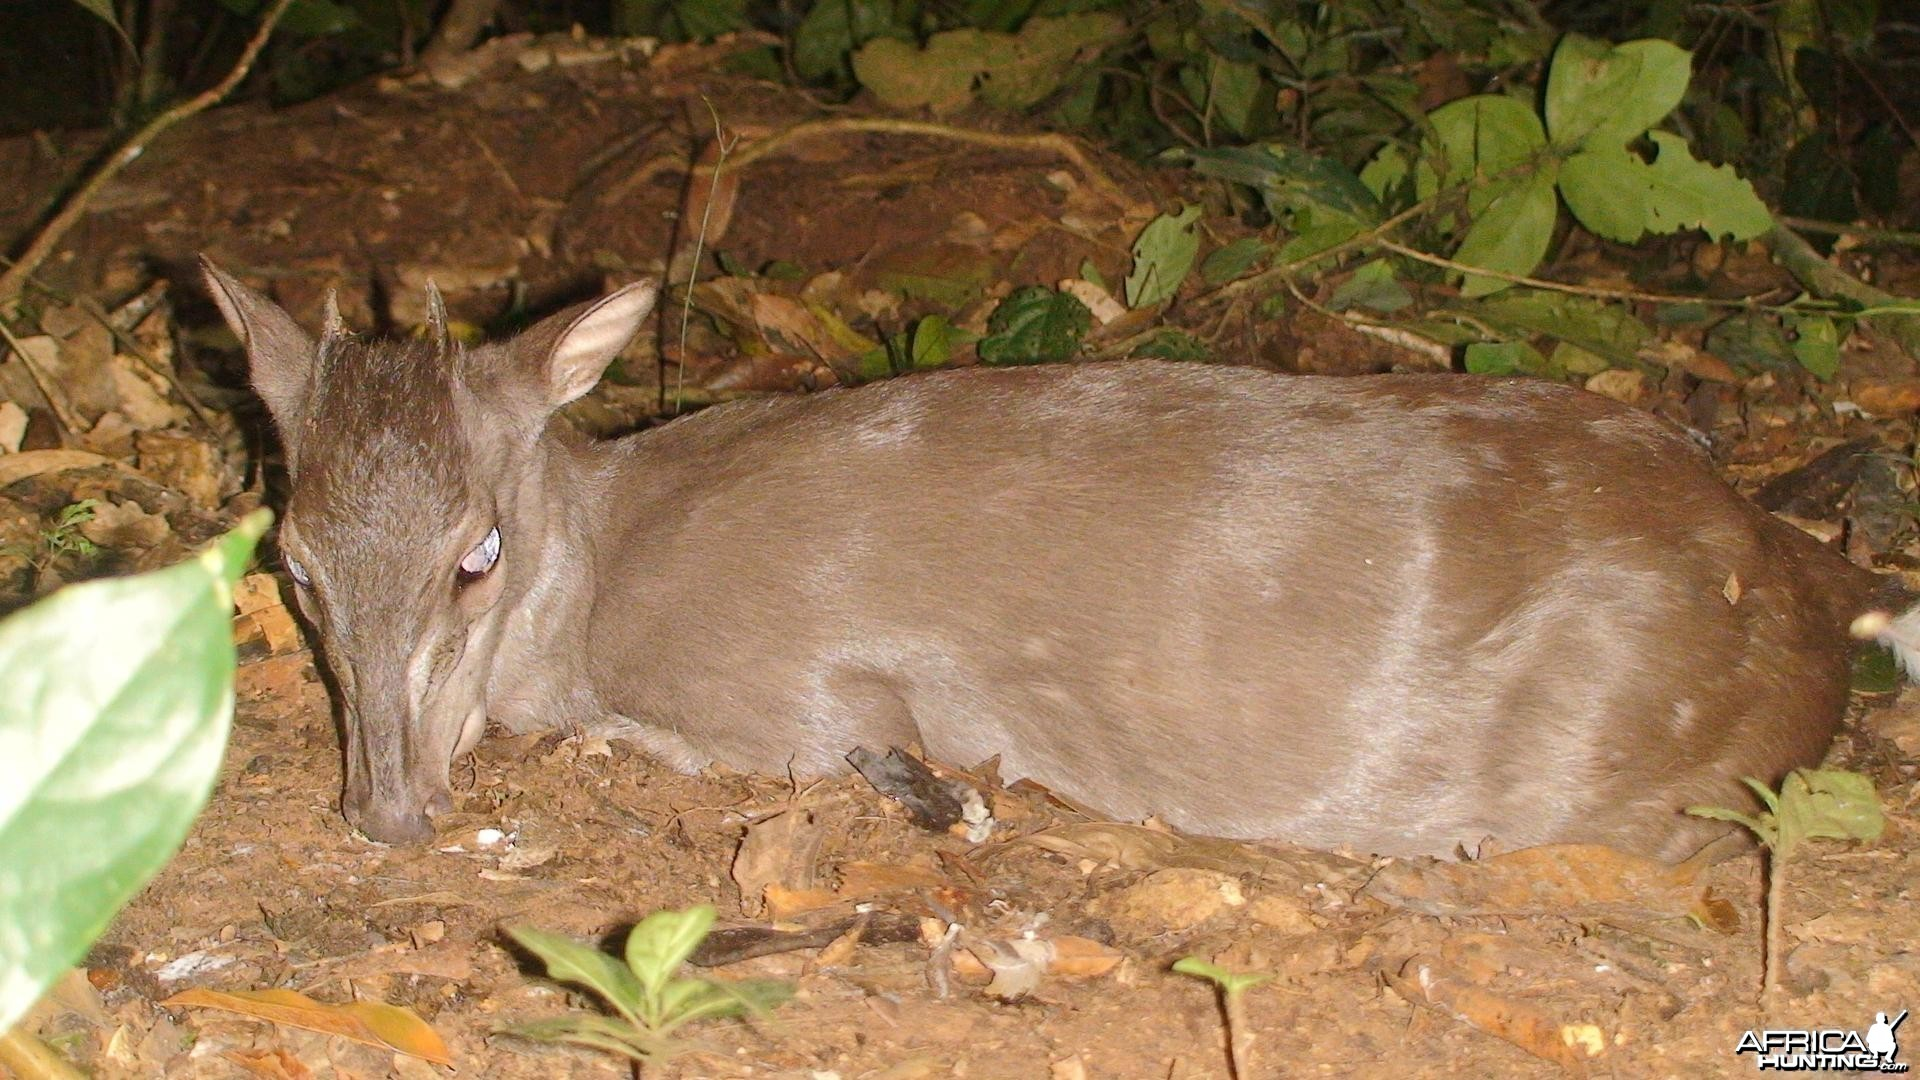 One of the smallest antelopes, Blue Duiker, Cameroon 2009